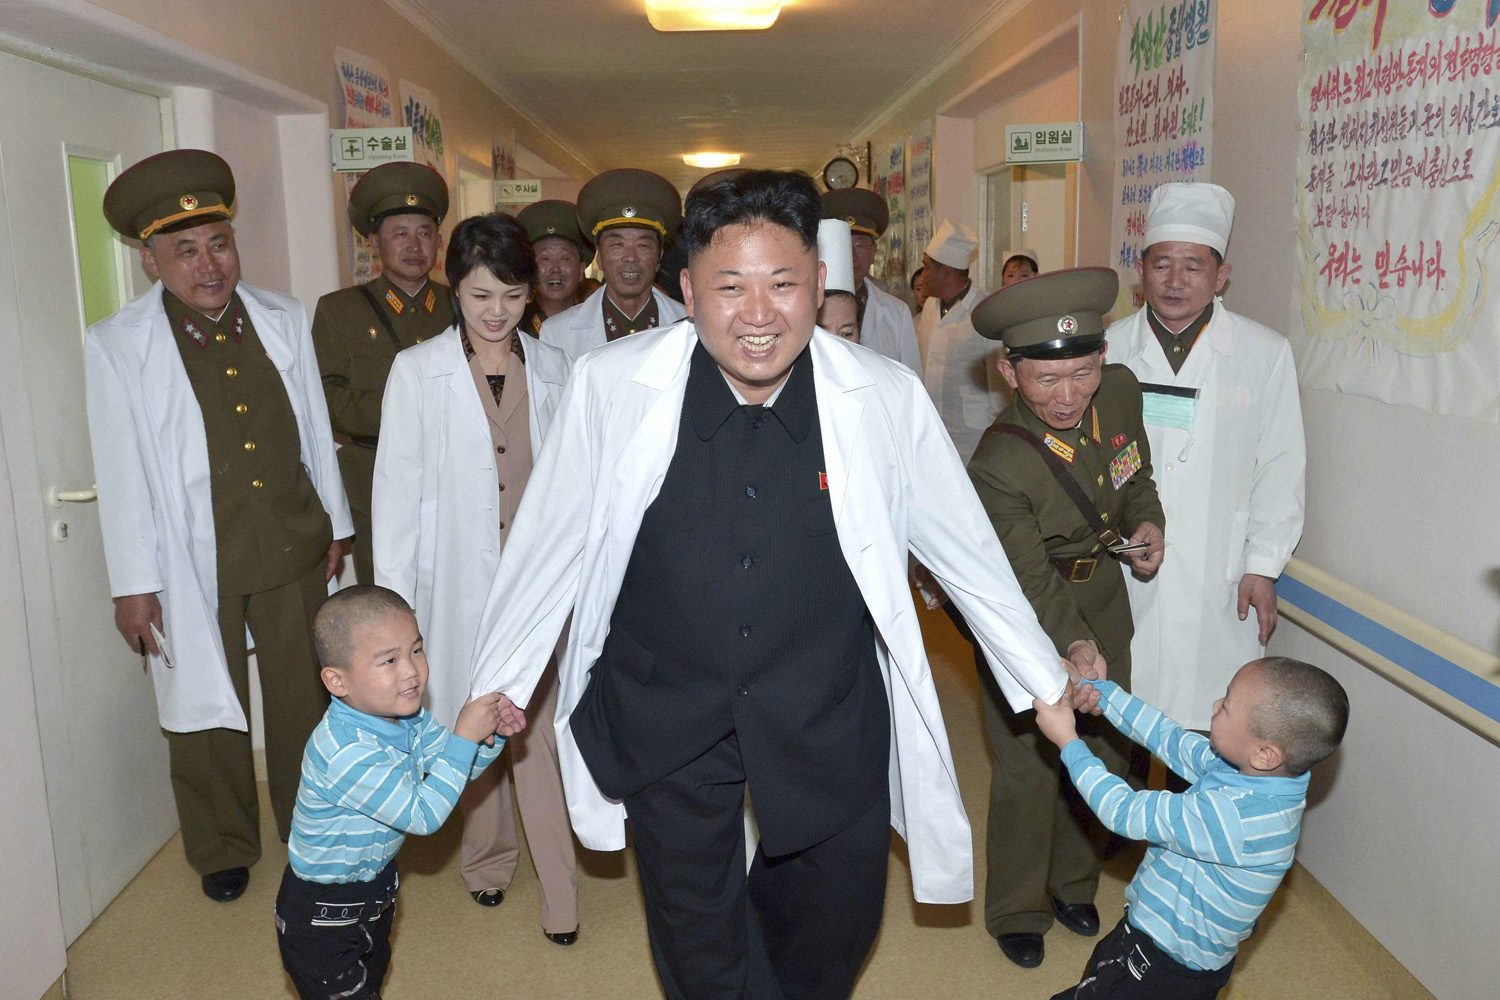 North Korean leader Kim Jong Un plays with children during a visit to the Taesongsan General Hospital in this undated photo released on May 19, 2014.